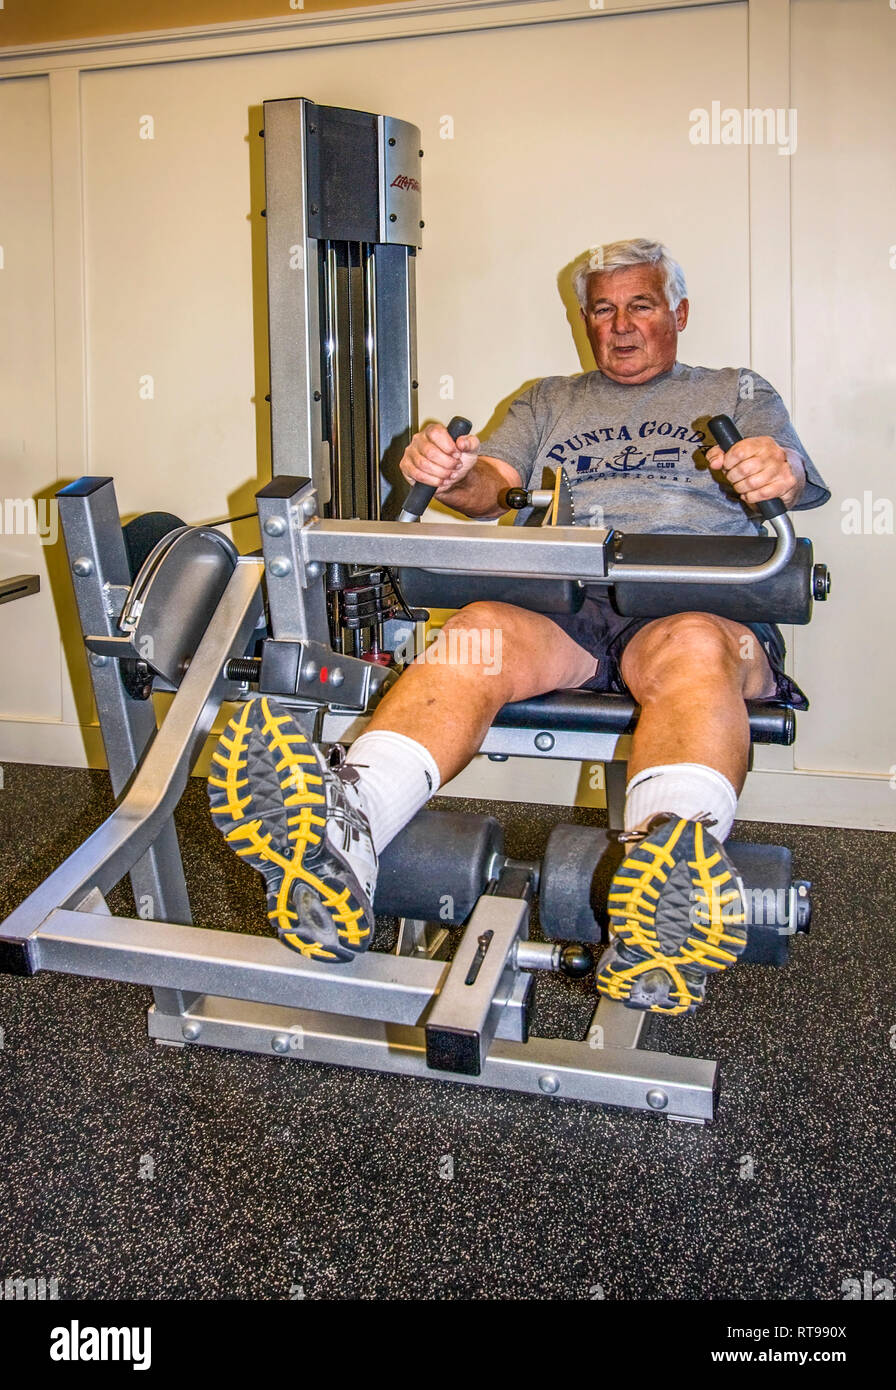 senior man exercising; fitness machine; health center; healthy; conditioning; effort, strengthening, physical activity, work out, vertical; MR - Stock Image